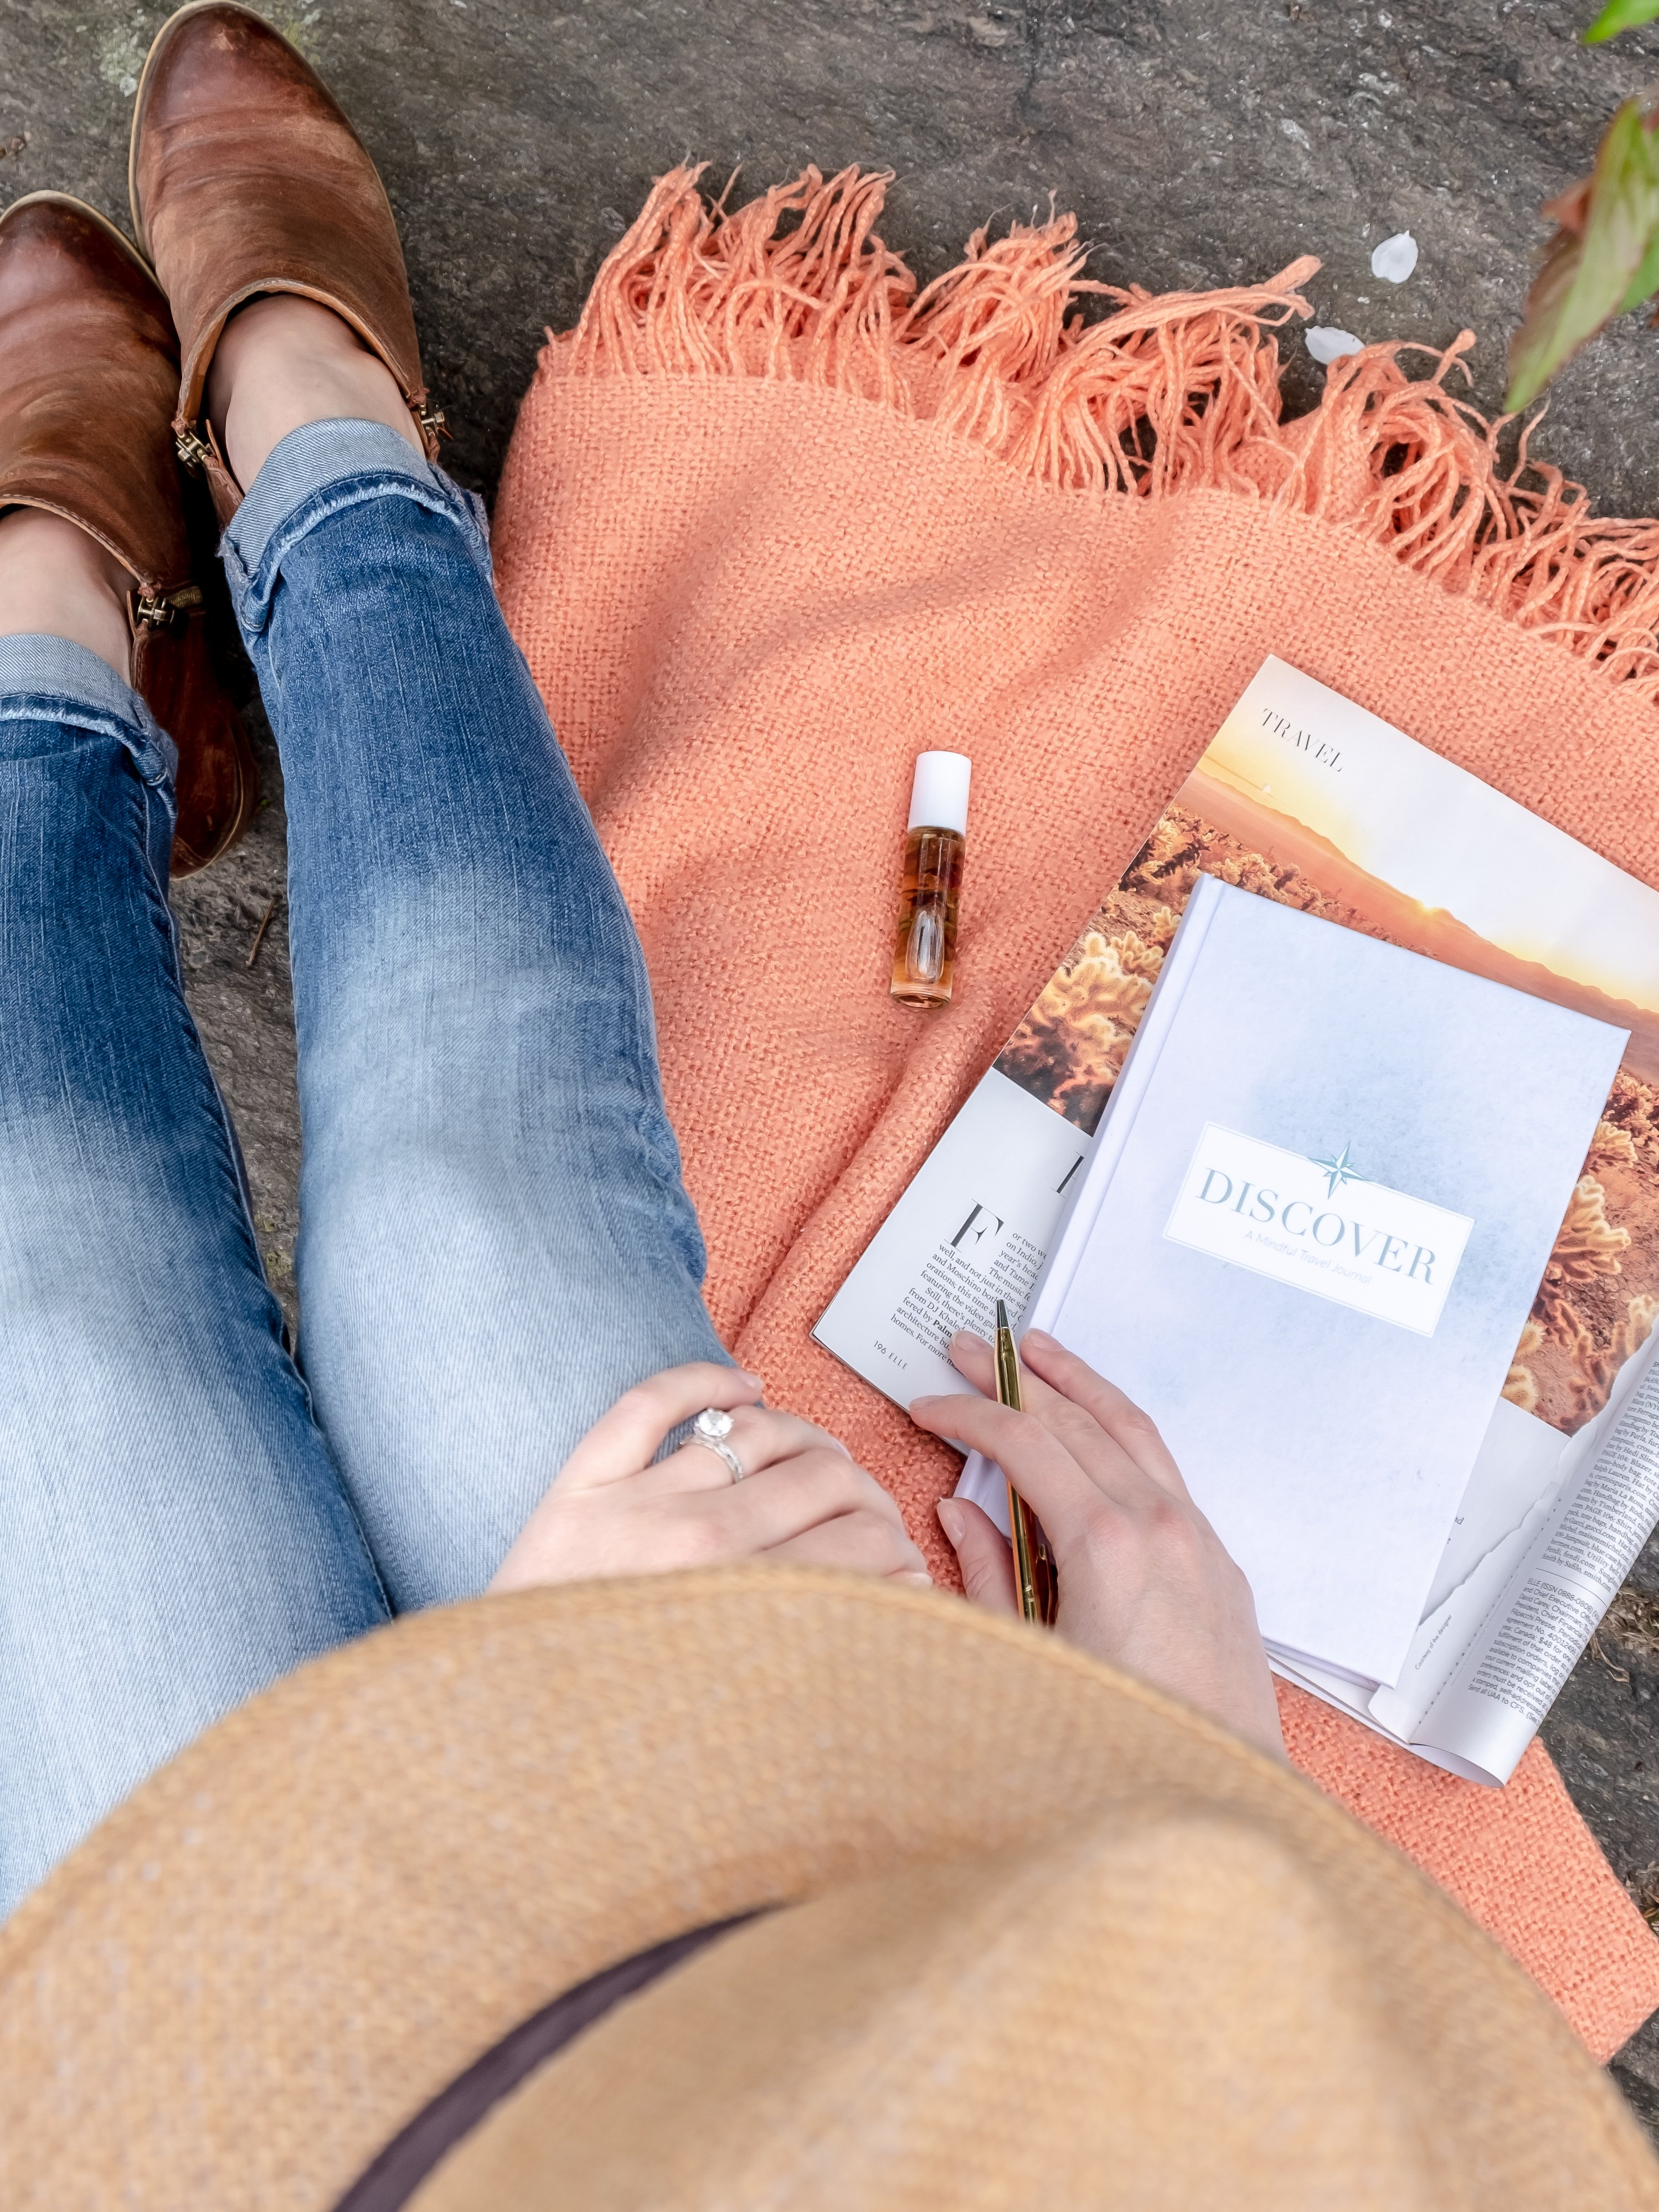 Woman using a travel journal with prompts in the park